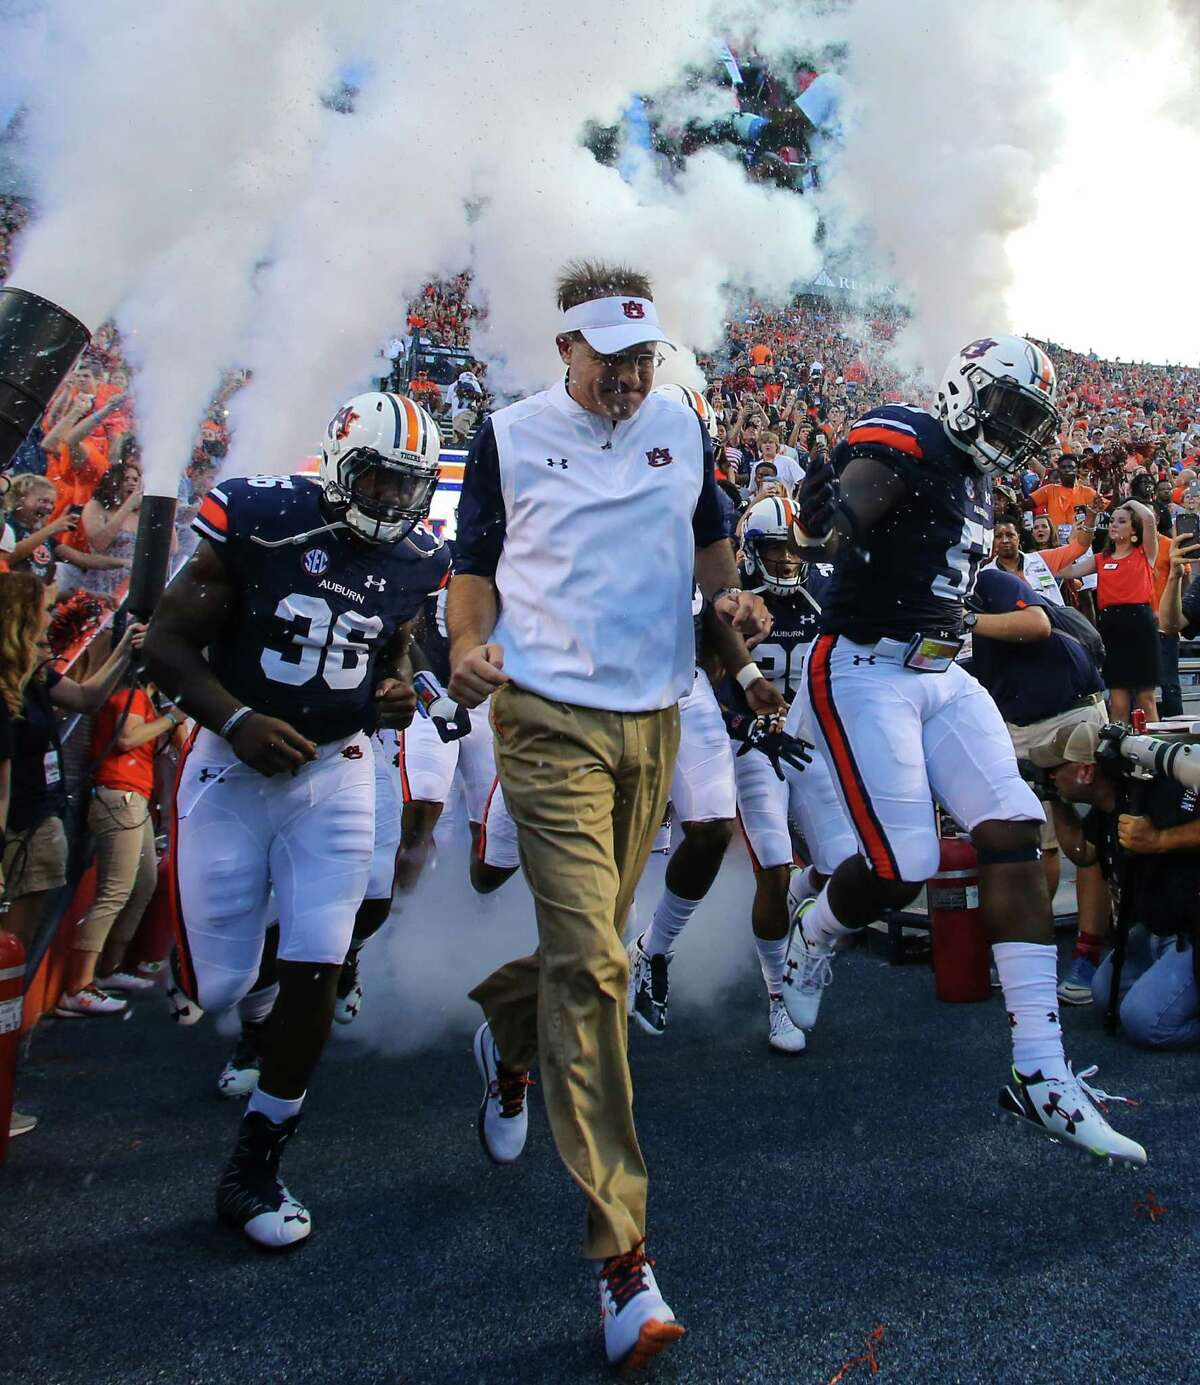 10 highest-earning college athletic programs in in the U.S. 10. Auburn Total revenue: $140,070,593 Total expenses: $124,864,399 Source: USA Today